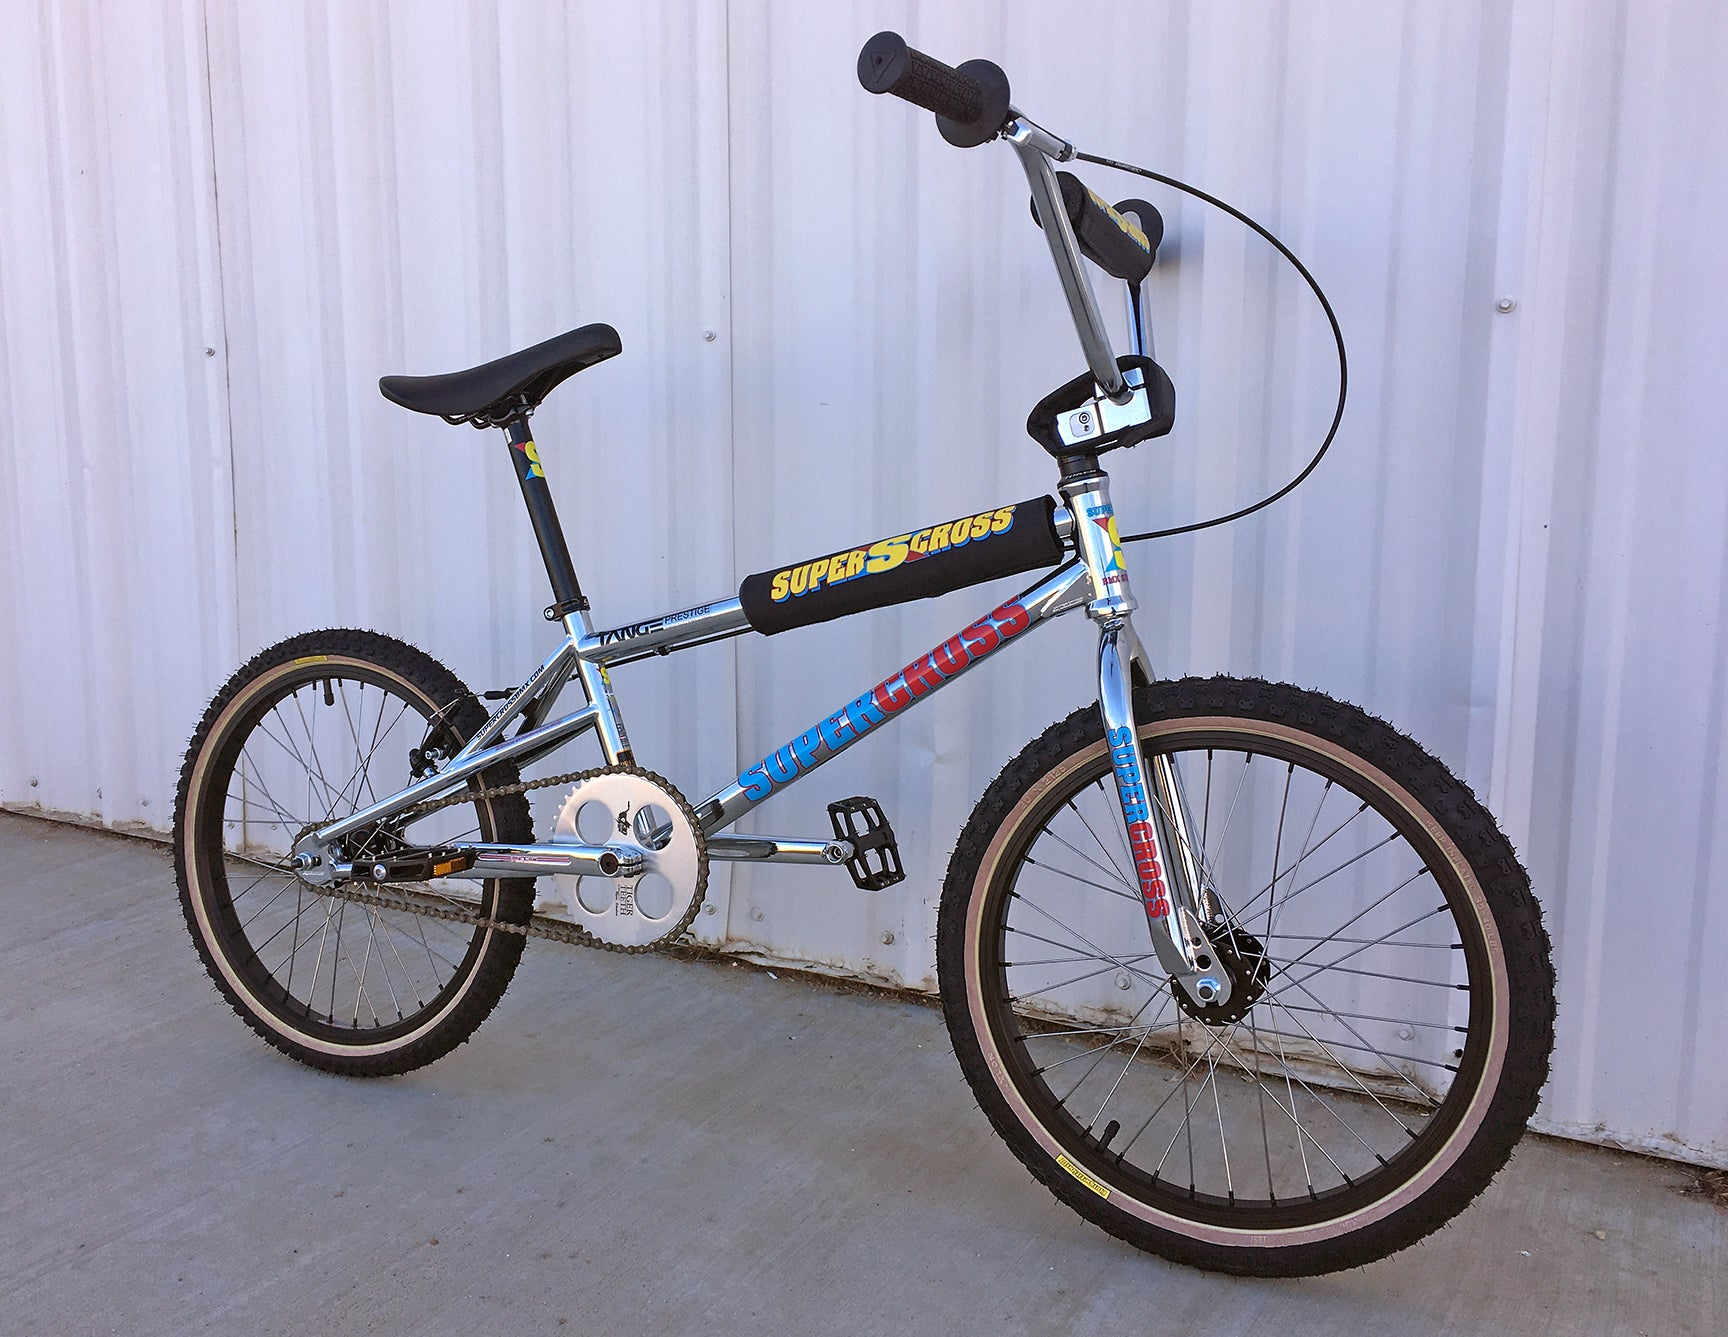 Supercross BMX | SX250 - 30 Year Anniversary Complete - Supercross BMX - BMX Racing